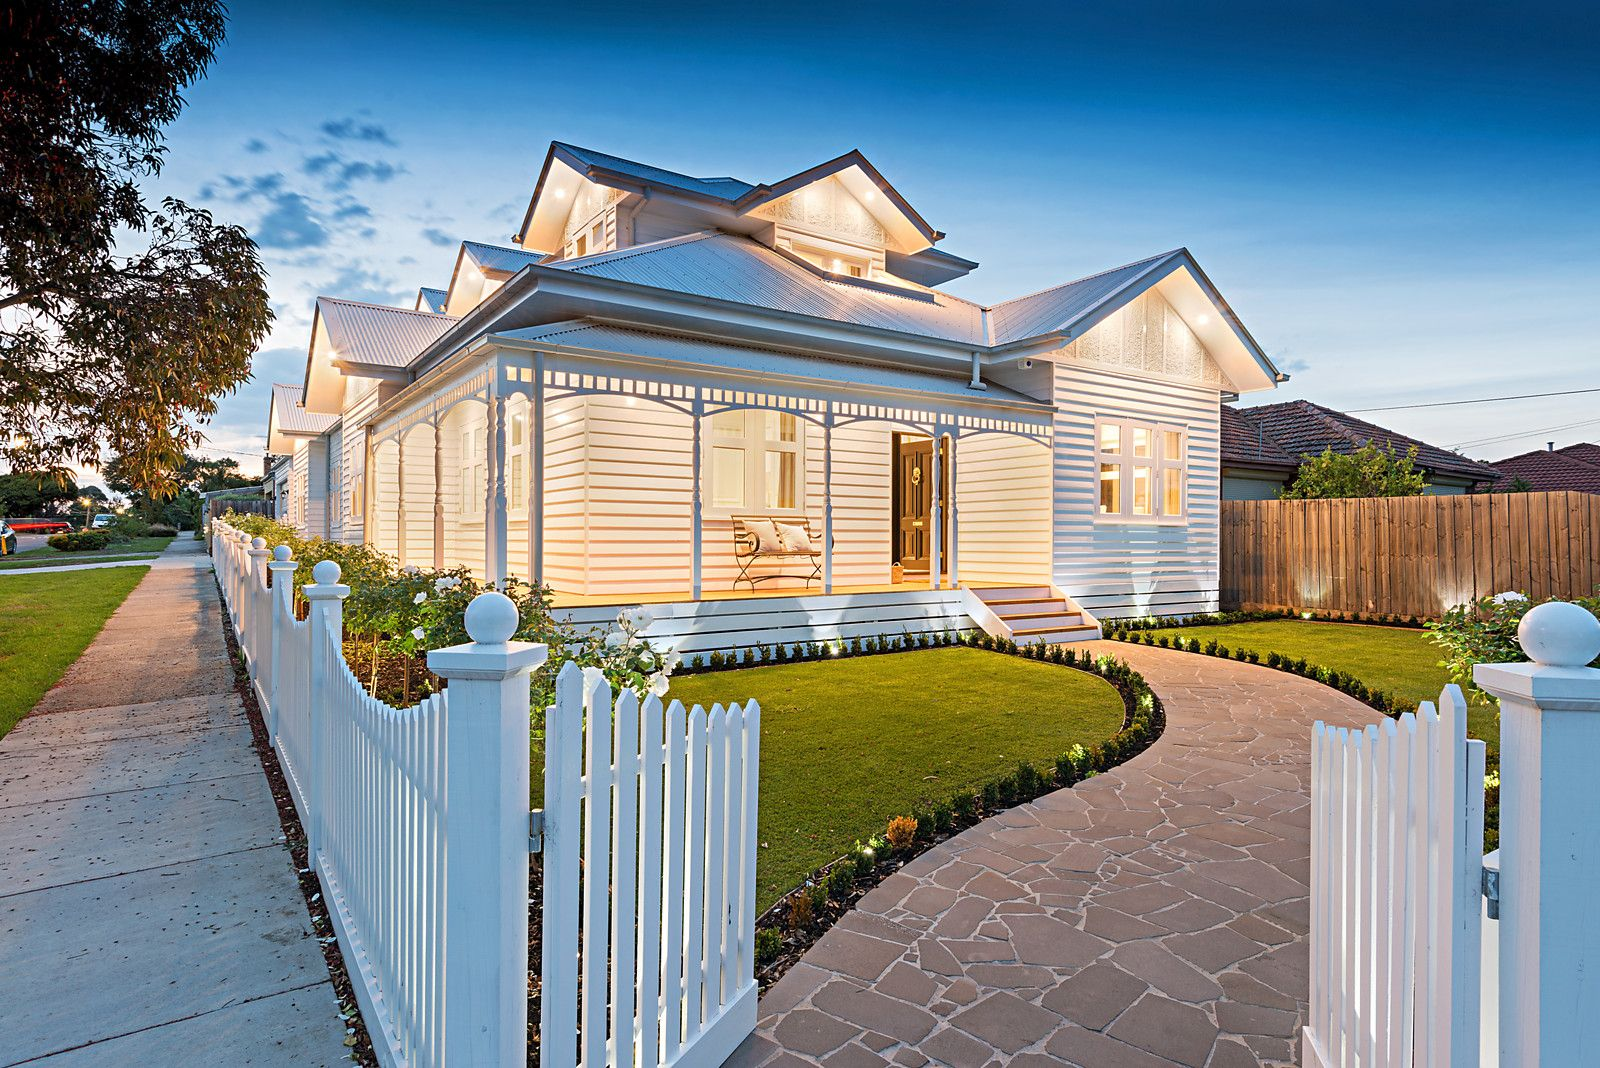 traditional weatherboard in Melbourne meets modern